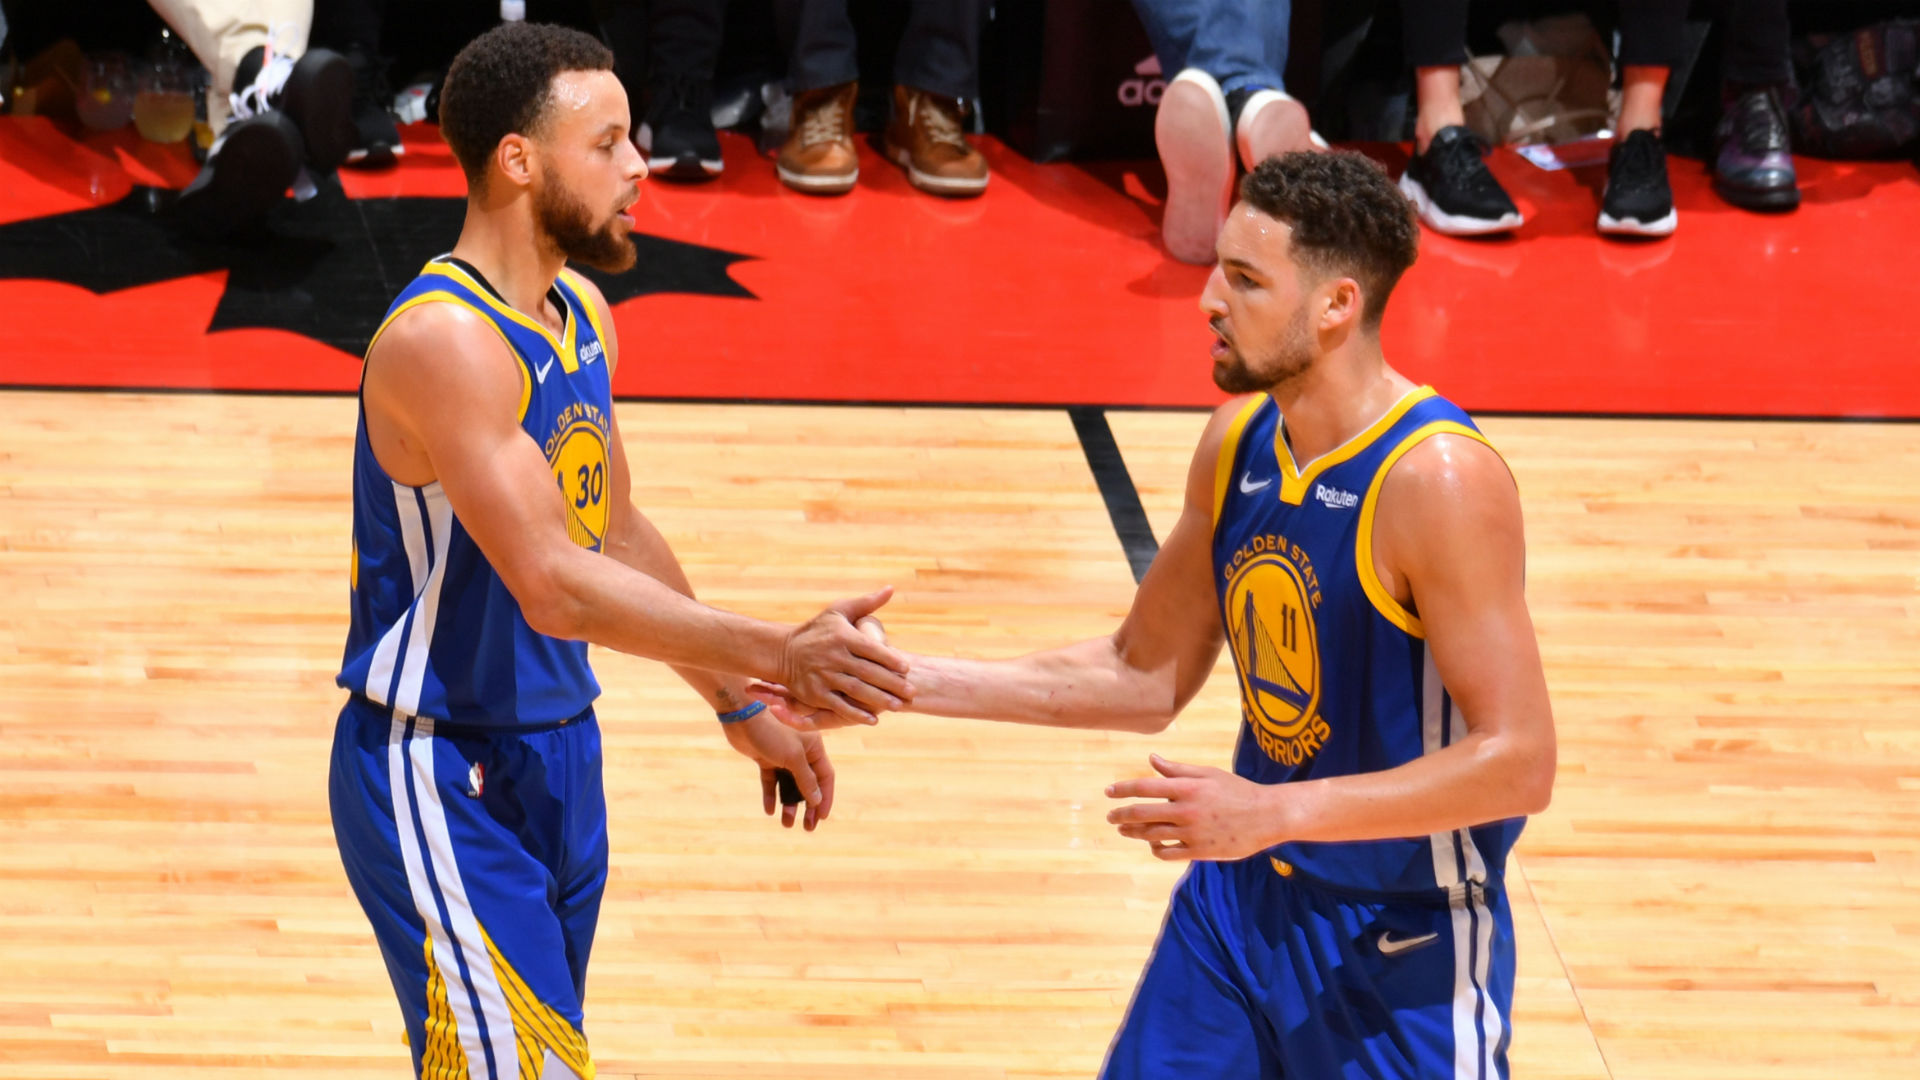 NBA Finals 2019: Klay Thompson on the Warriors late comeback 'When you have the firepower we do, you're never out of it'